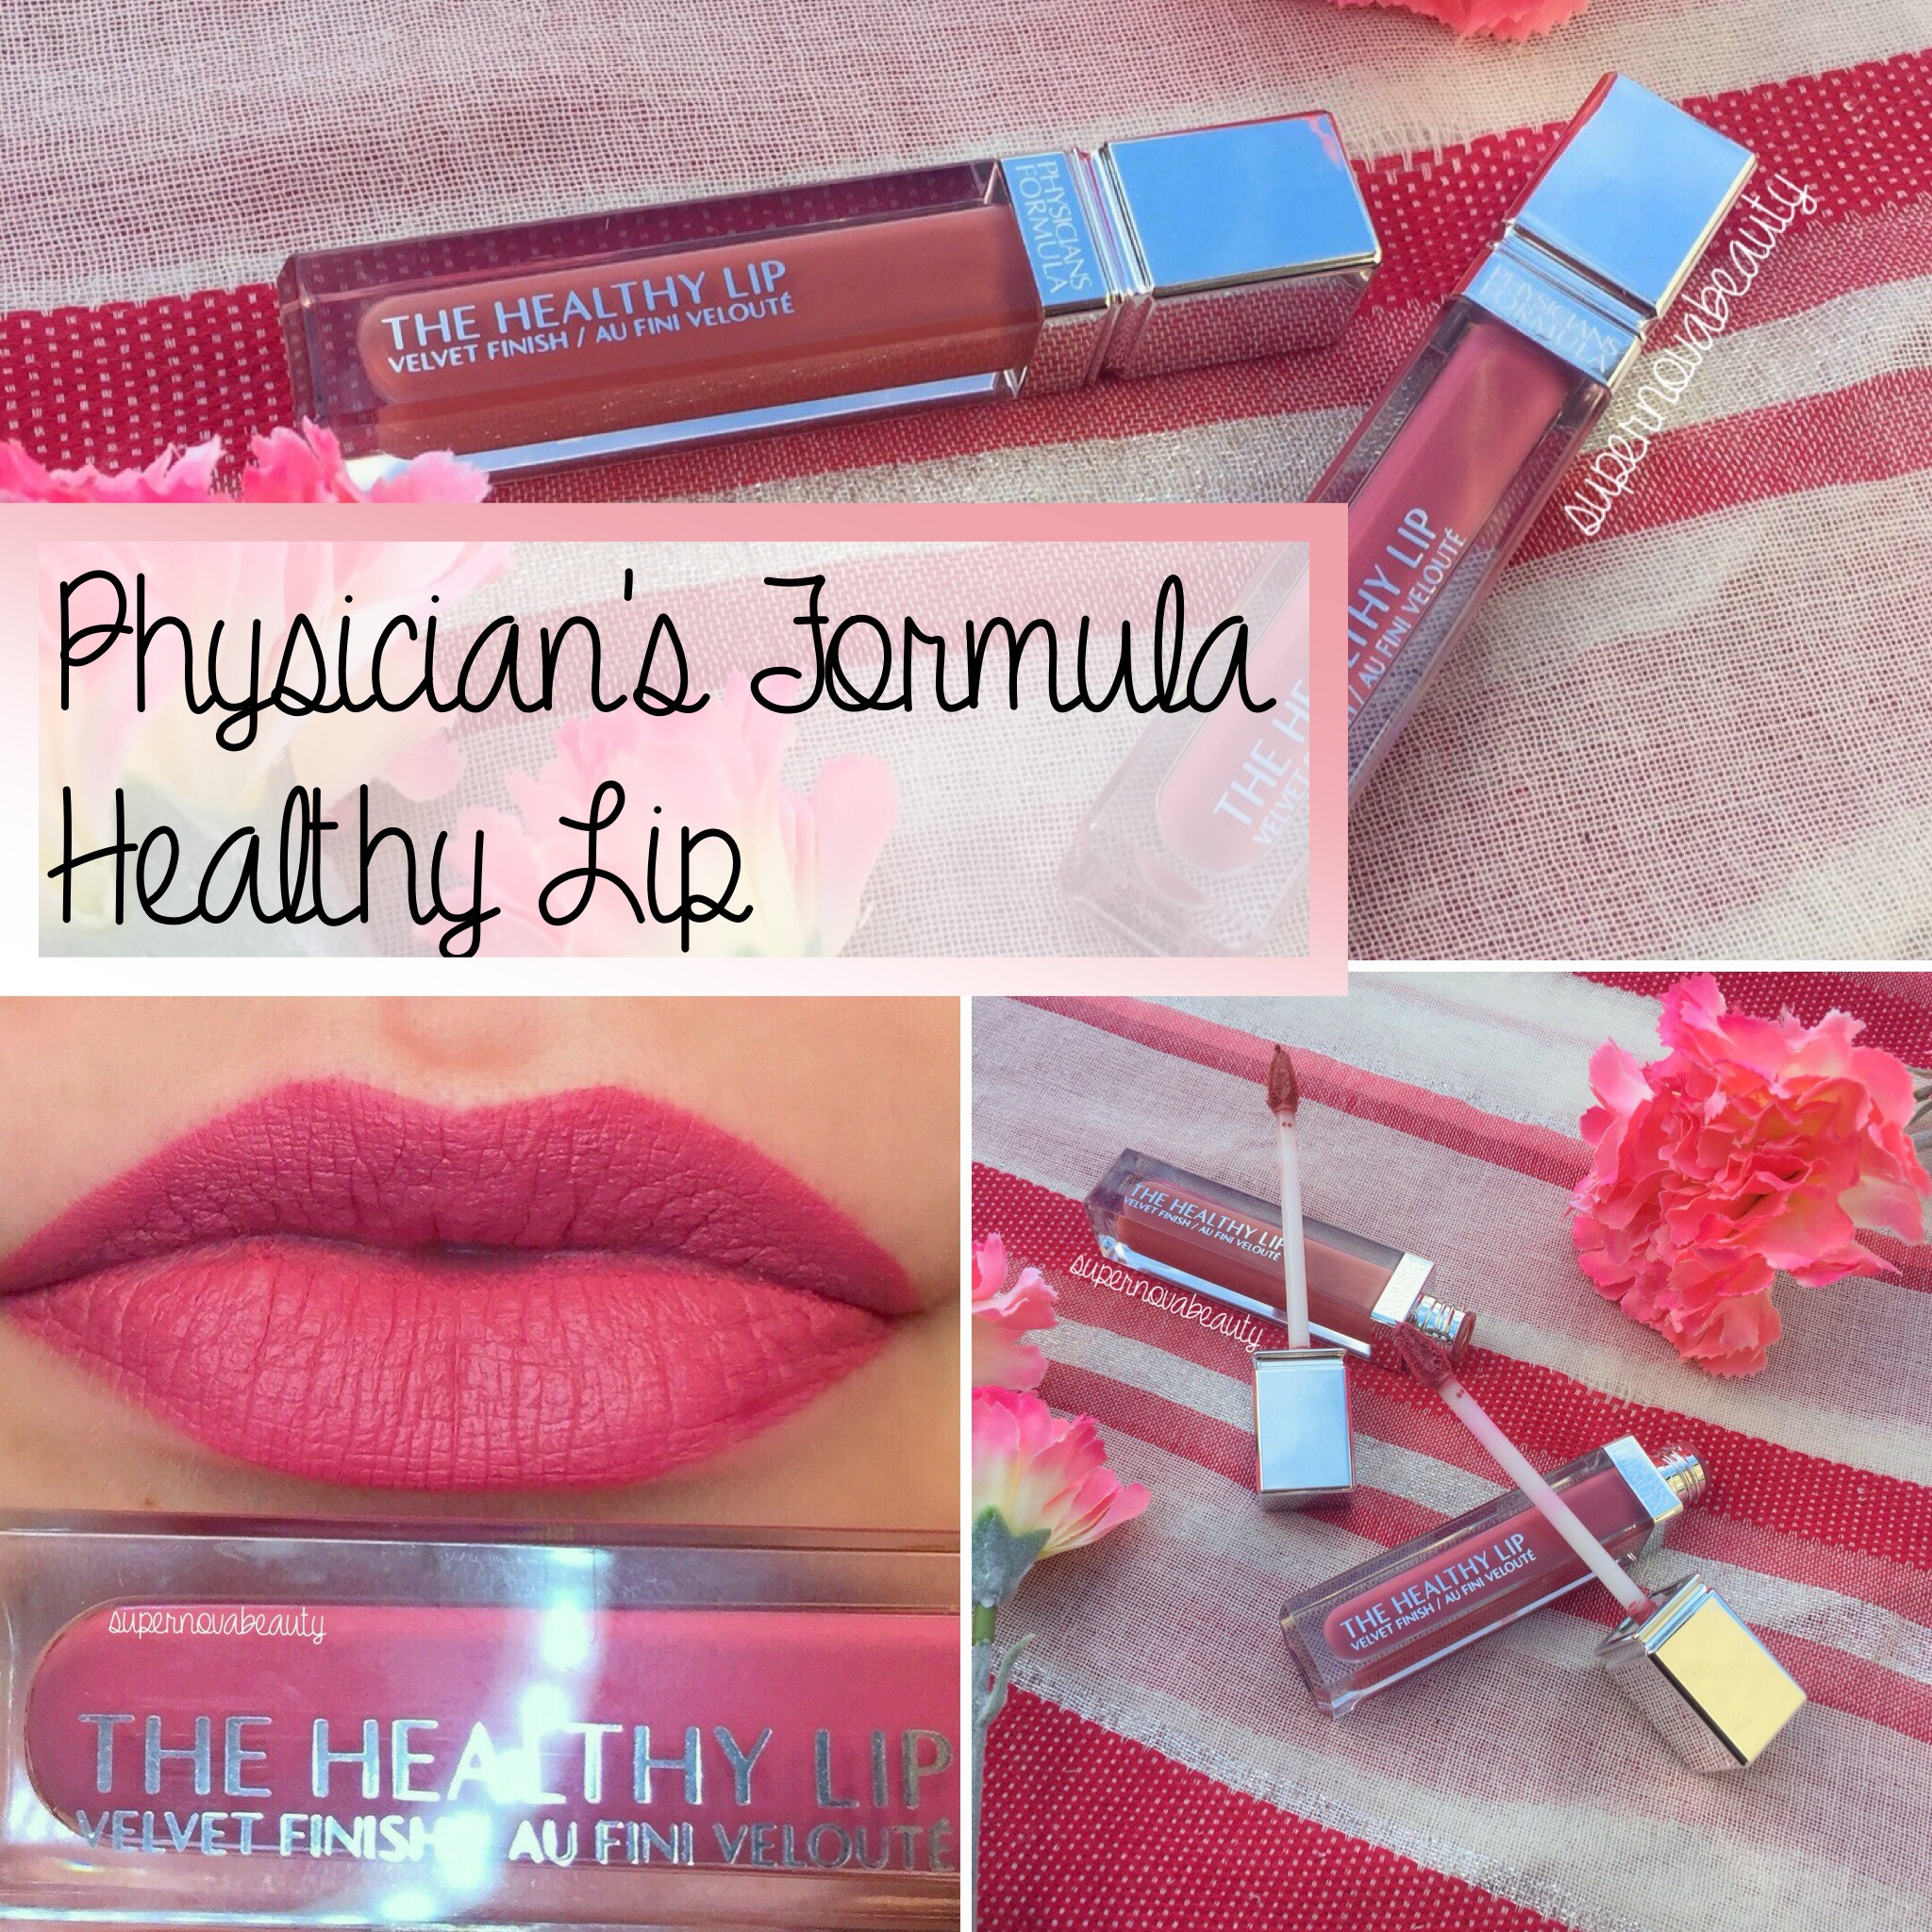 PHYSICIANS FORMULA HEALTHY LIP